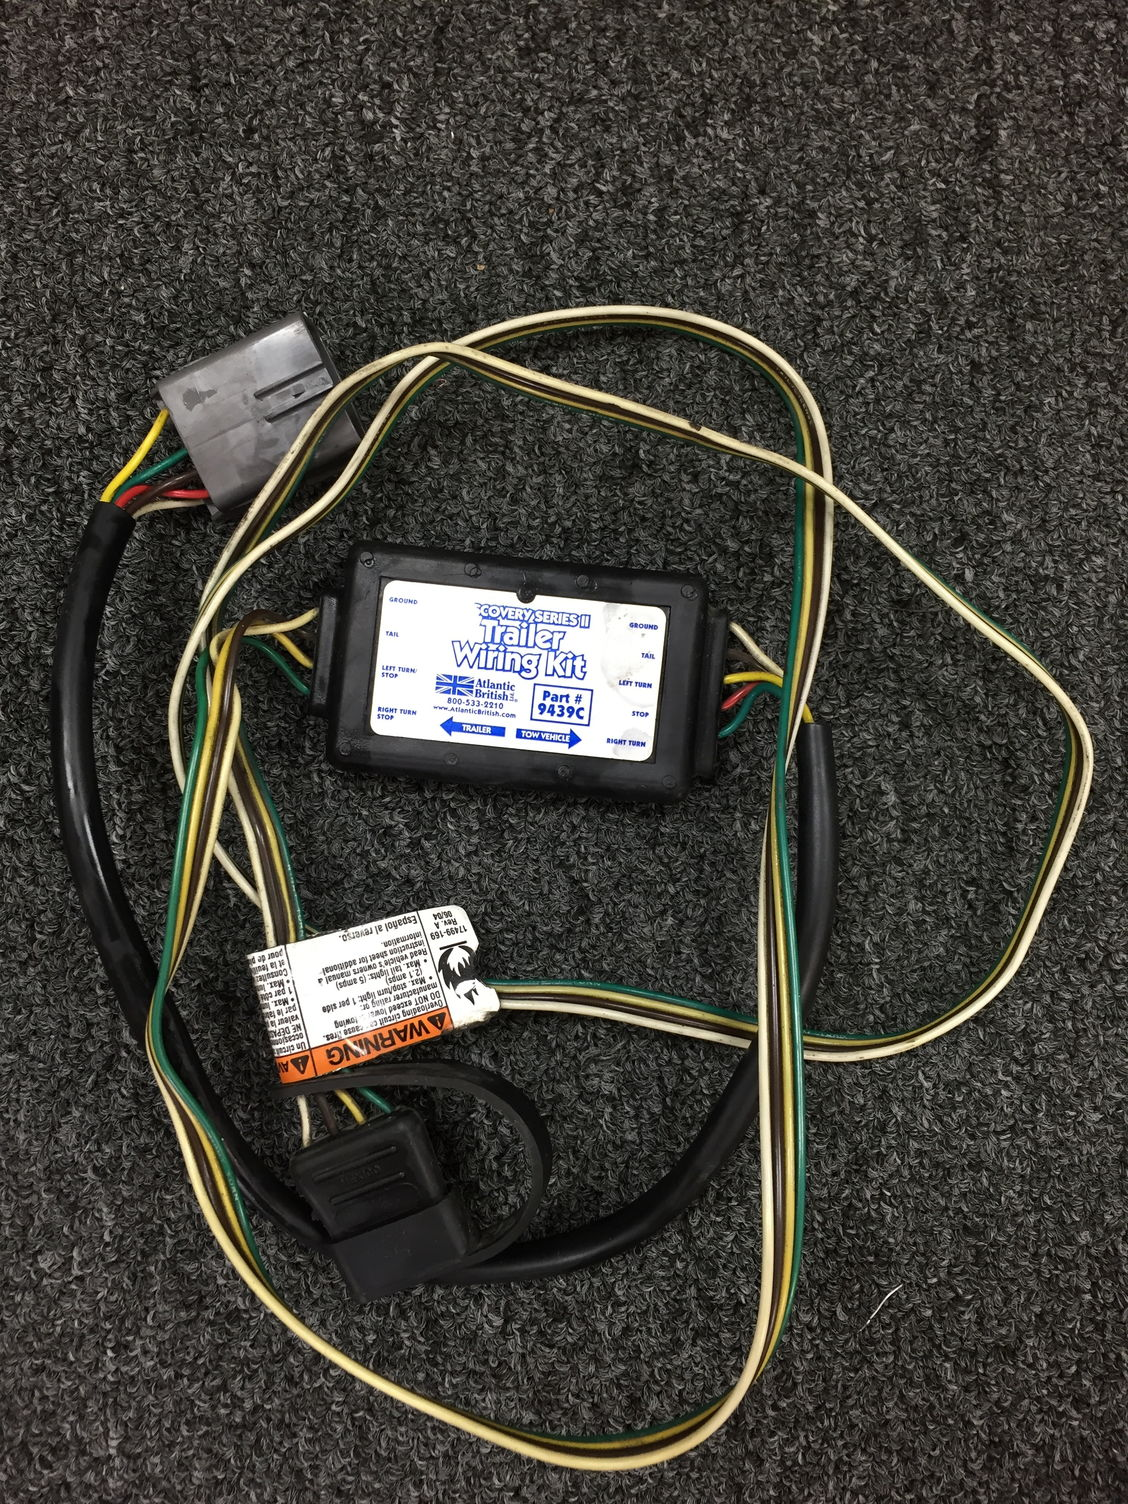 Land Rover Trailer Wiring Harness Early Home Wiring Germlin X – Land Rover Trailer Wiring Harness